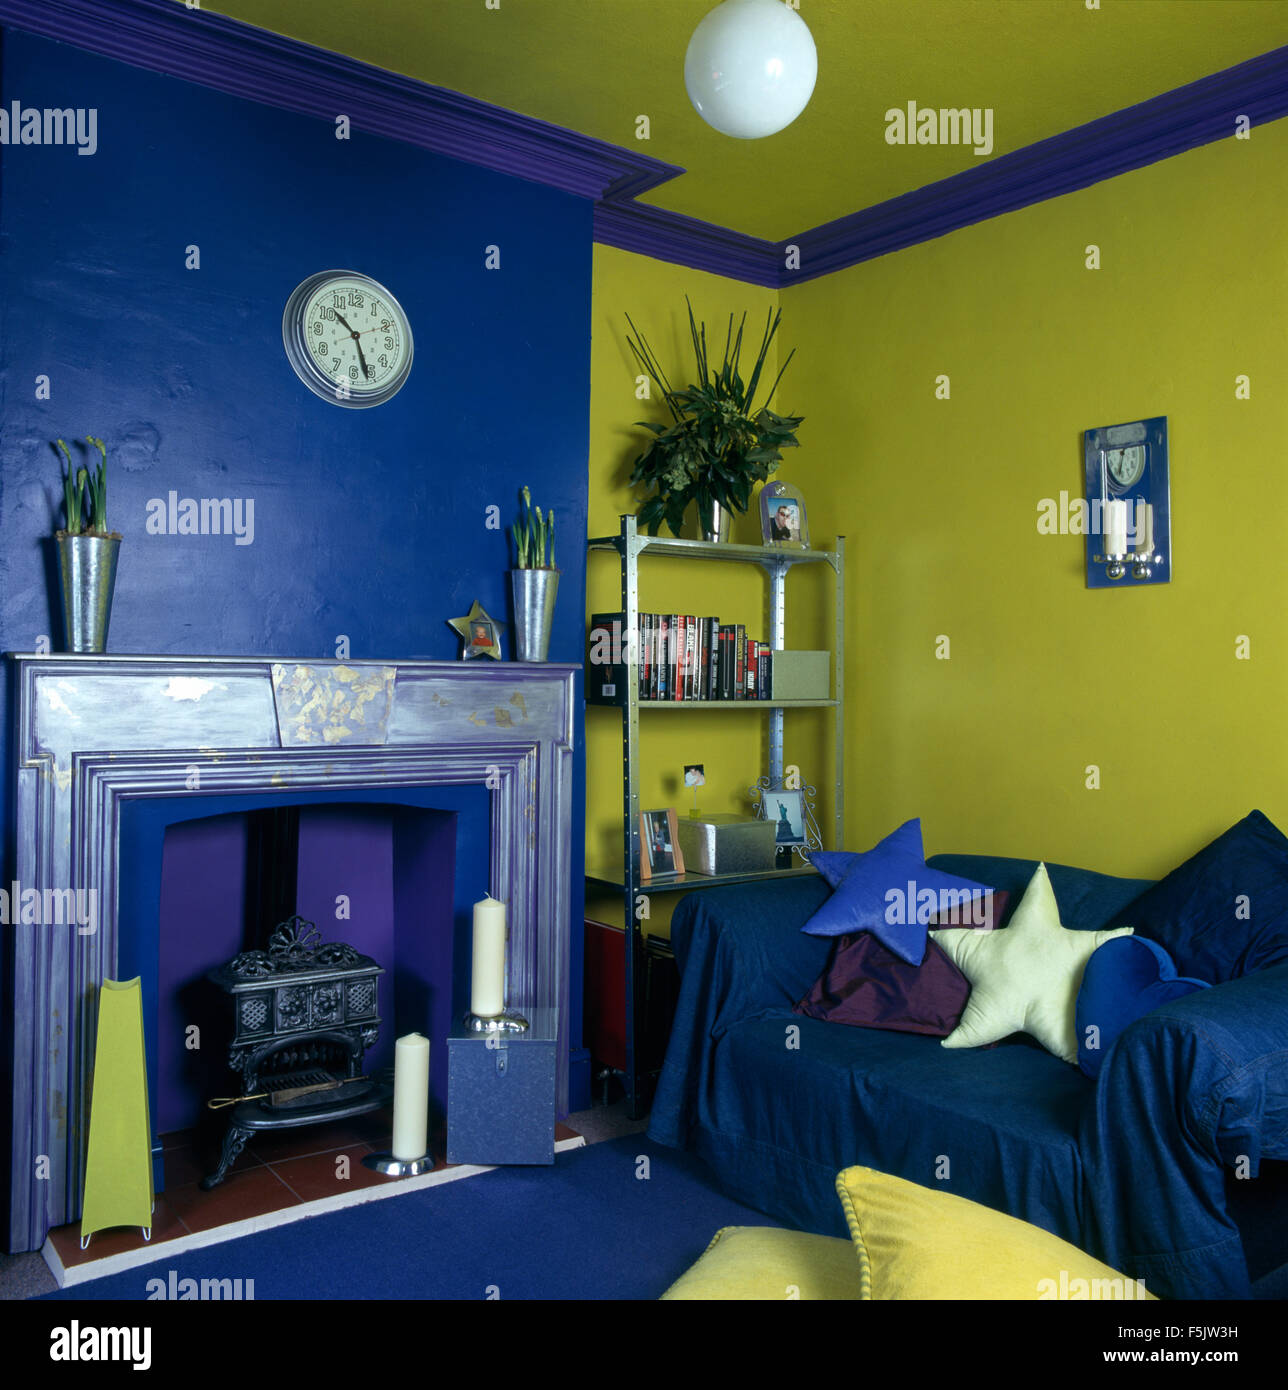 Star Shaped Cushions And Blue Throw On Sofa In Lime Green And Bright Stock Photo Alamy